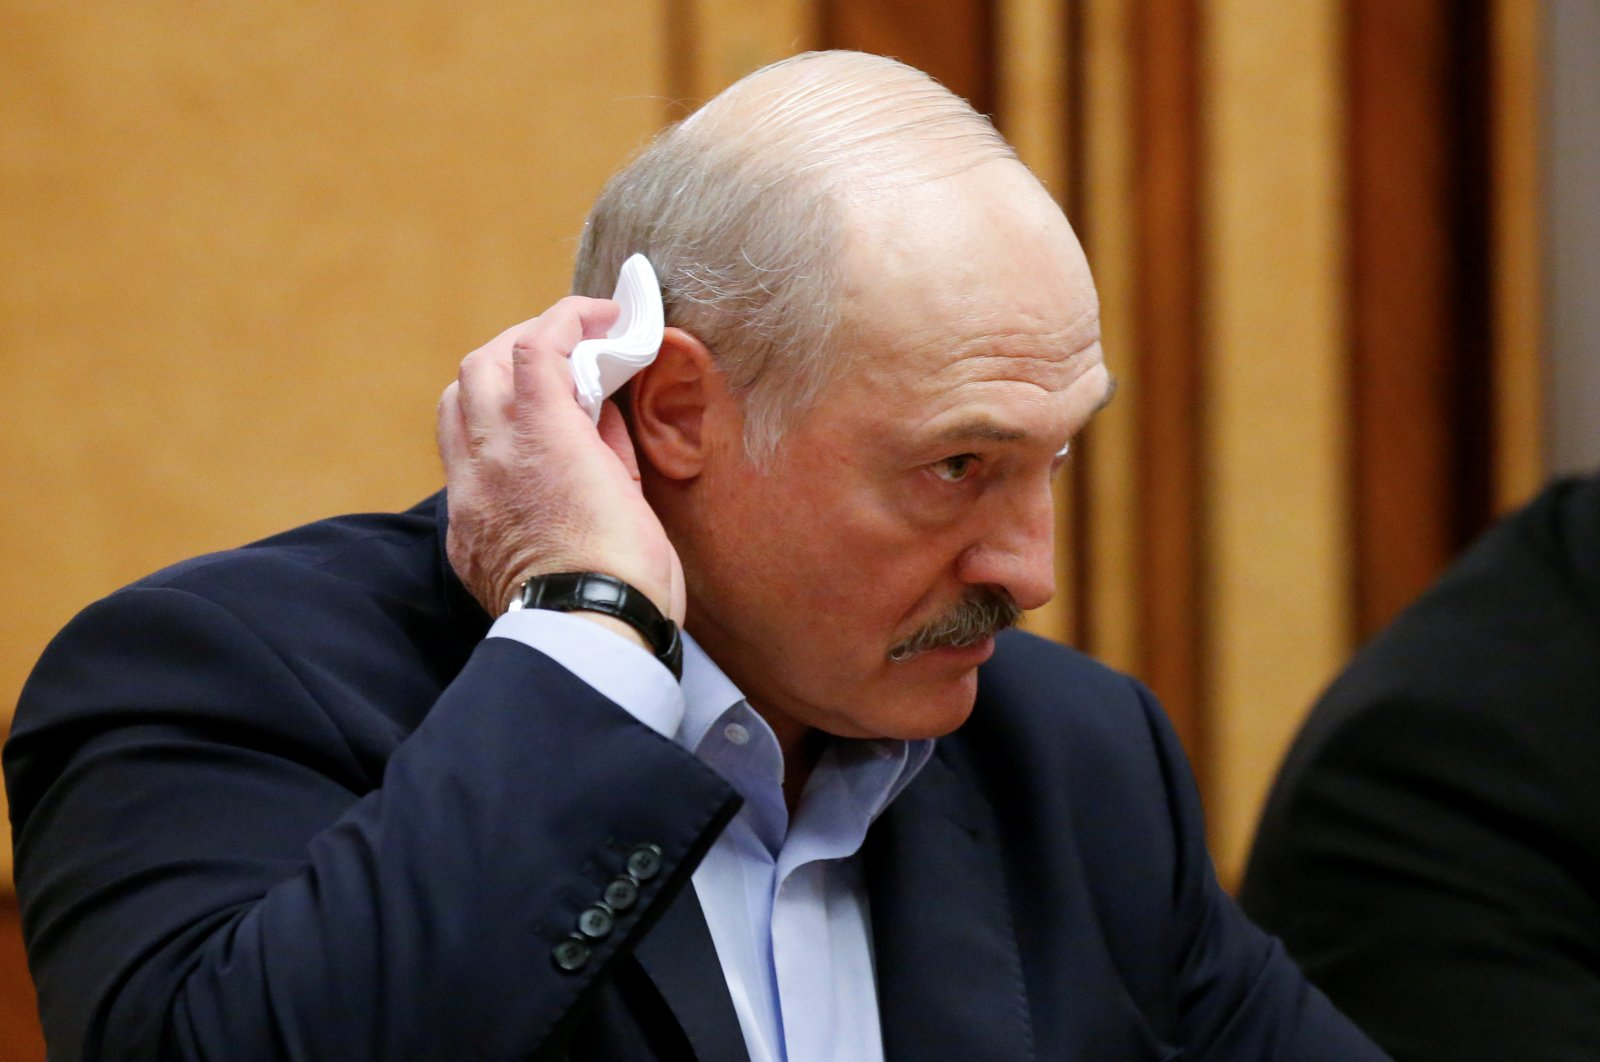 Belarusian President Alexander Lukashenko listens to Russian President Vladimir Putin, not pictured, during their meeting in the Black Sea resort of Sochi, Russia, Feb. 7, 2020. (Reuters Photo)